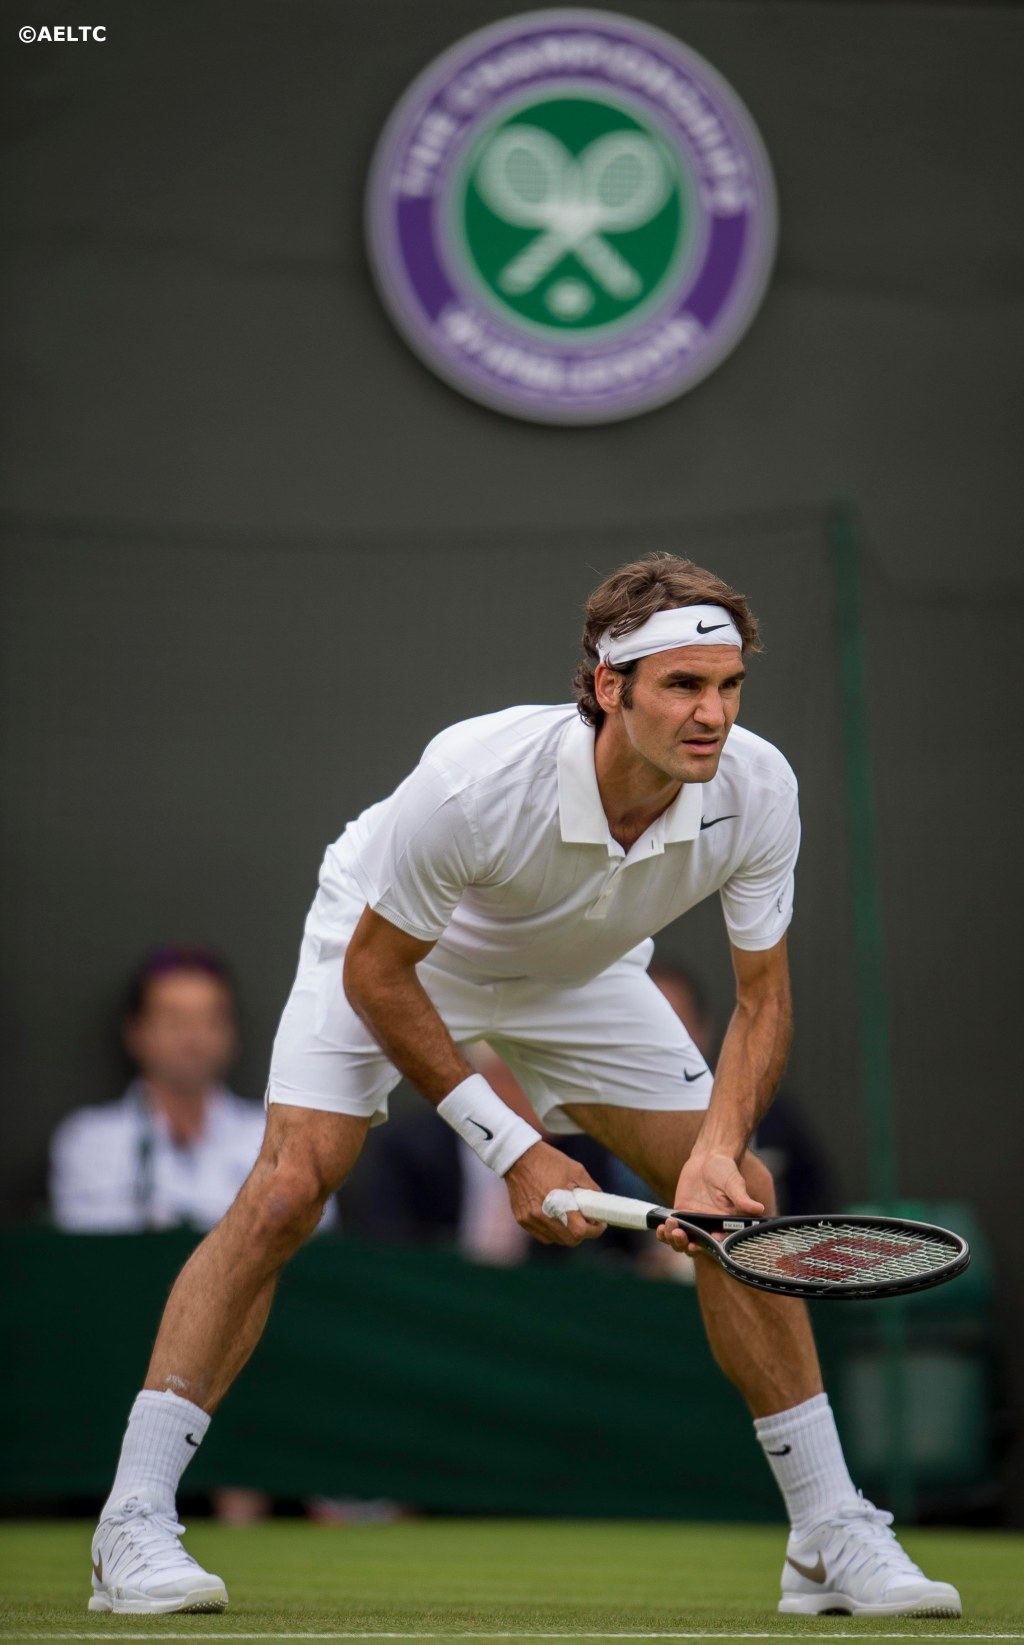 """Roger Federer prepares to return a serve during a match against Paolo Lorenzi on No. 1 Court at the All England Lawn and Tennis Club in London, England Tuesday, June 24, 2014 during the 2014 Championships Wimbledon."""